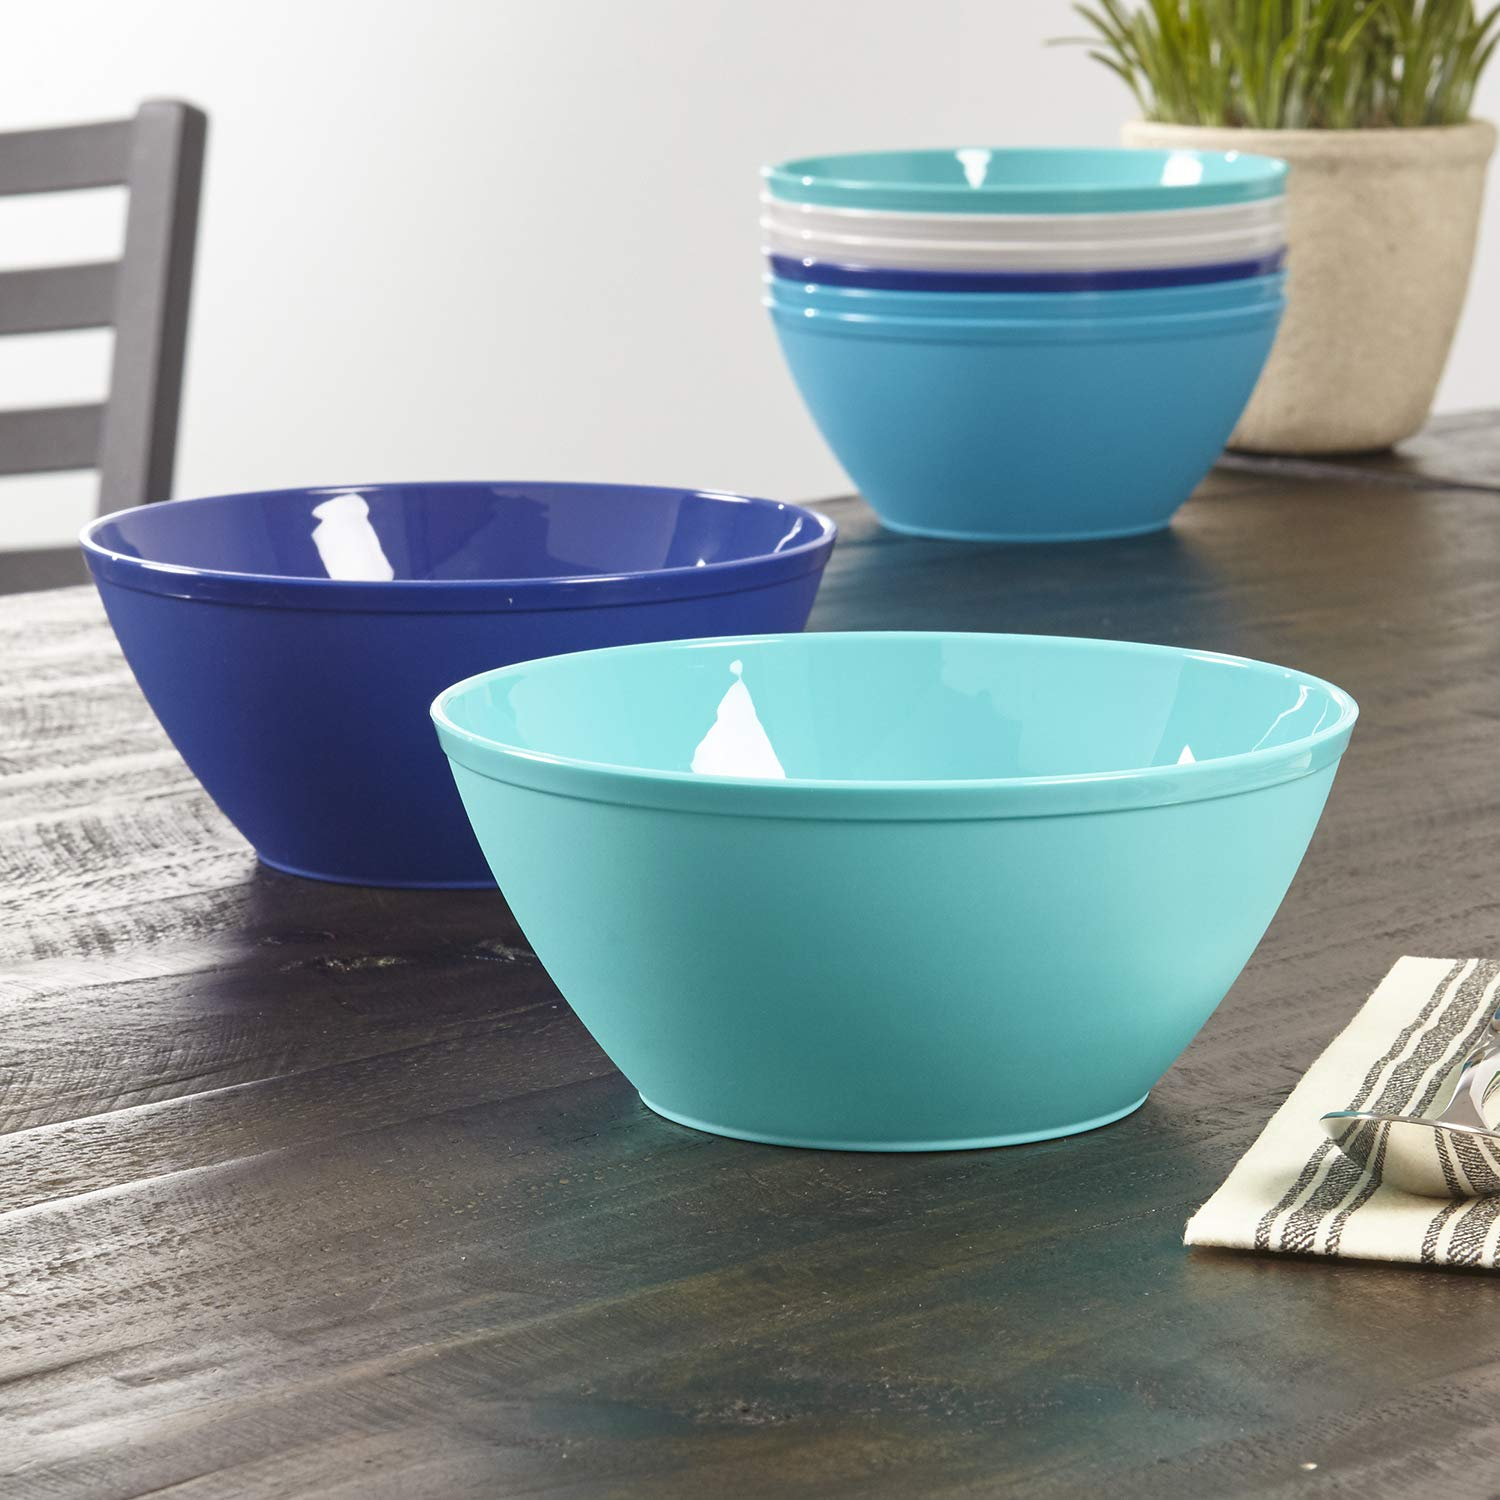 Fresco 6-inch Plastic Bowls for Cereal or Salad | set of 8 in 4 Coastal Colors by US Acrylic (Image #3)